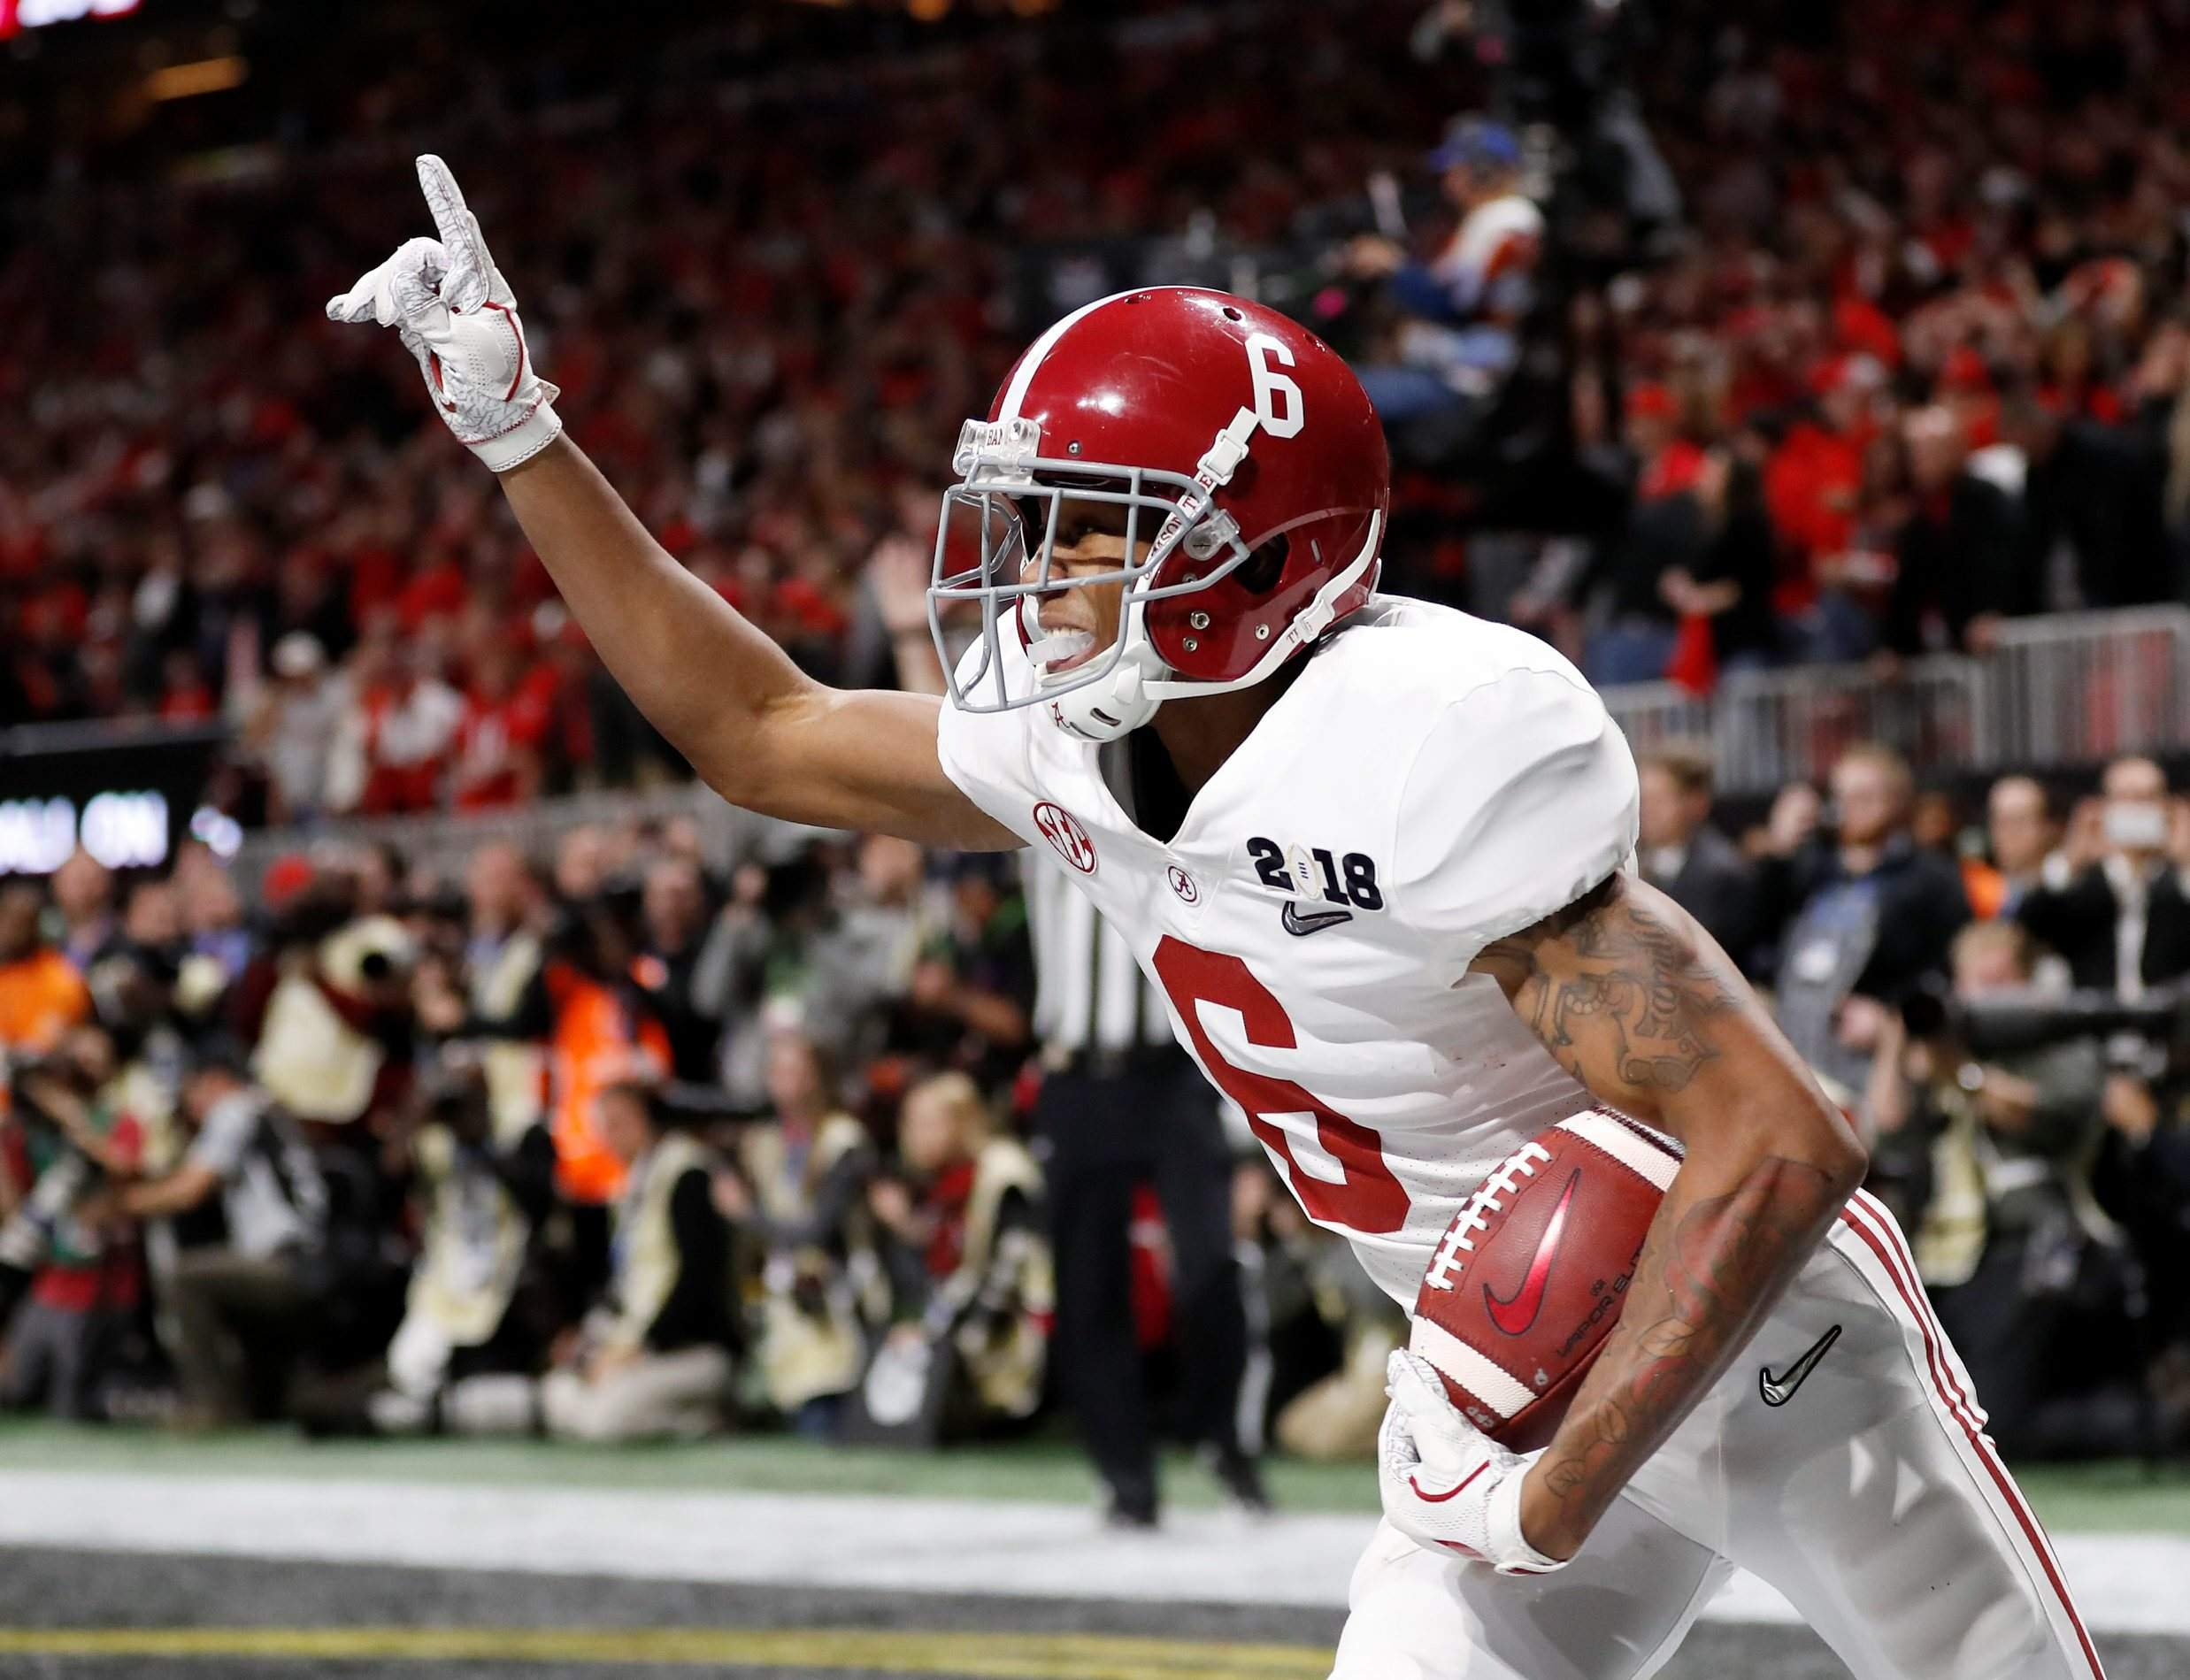 Alabama Crimson Tide starts season atop Associated Press college football rankings